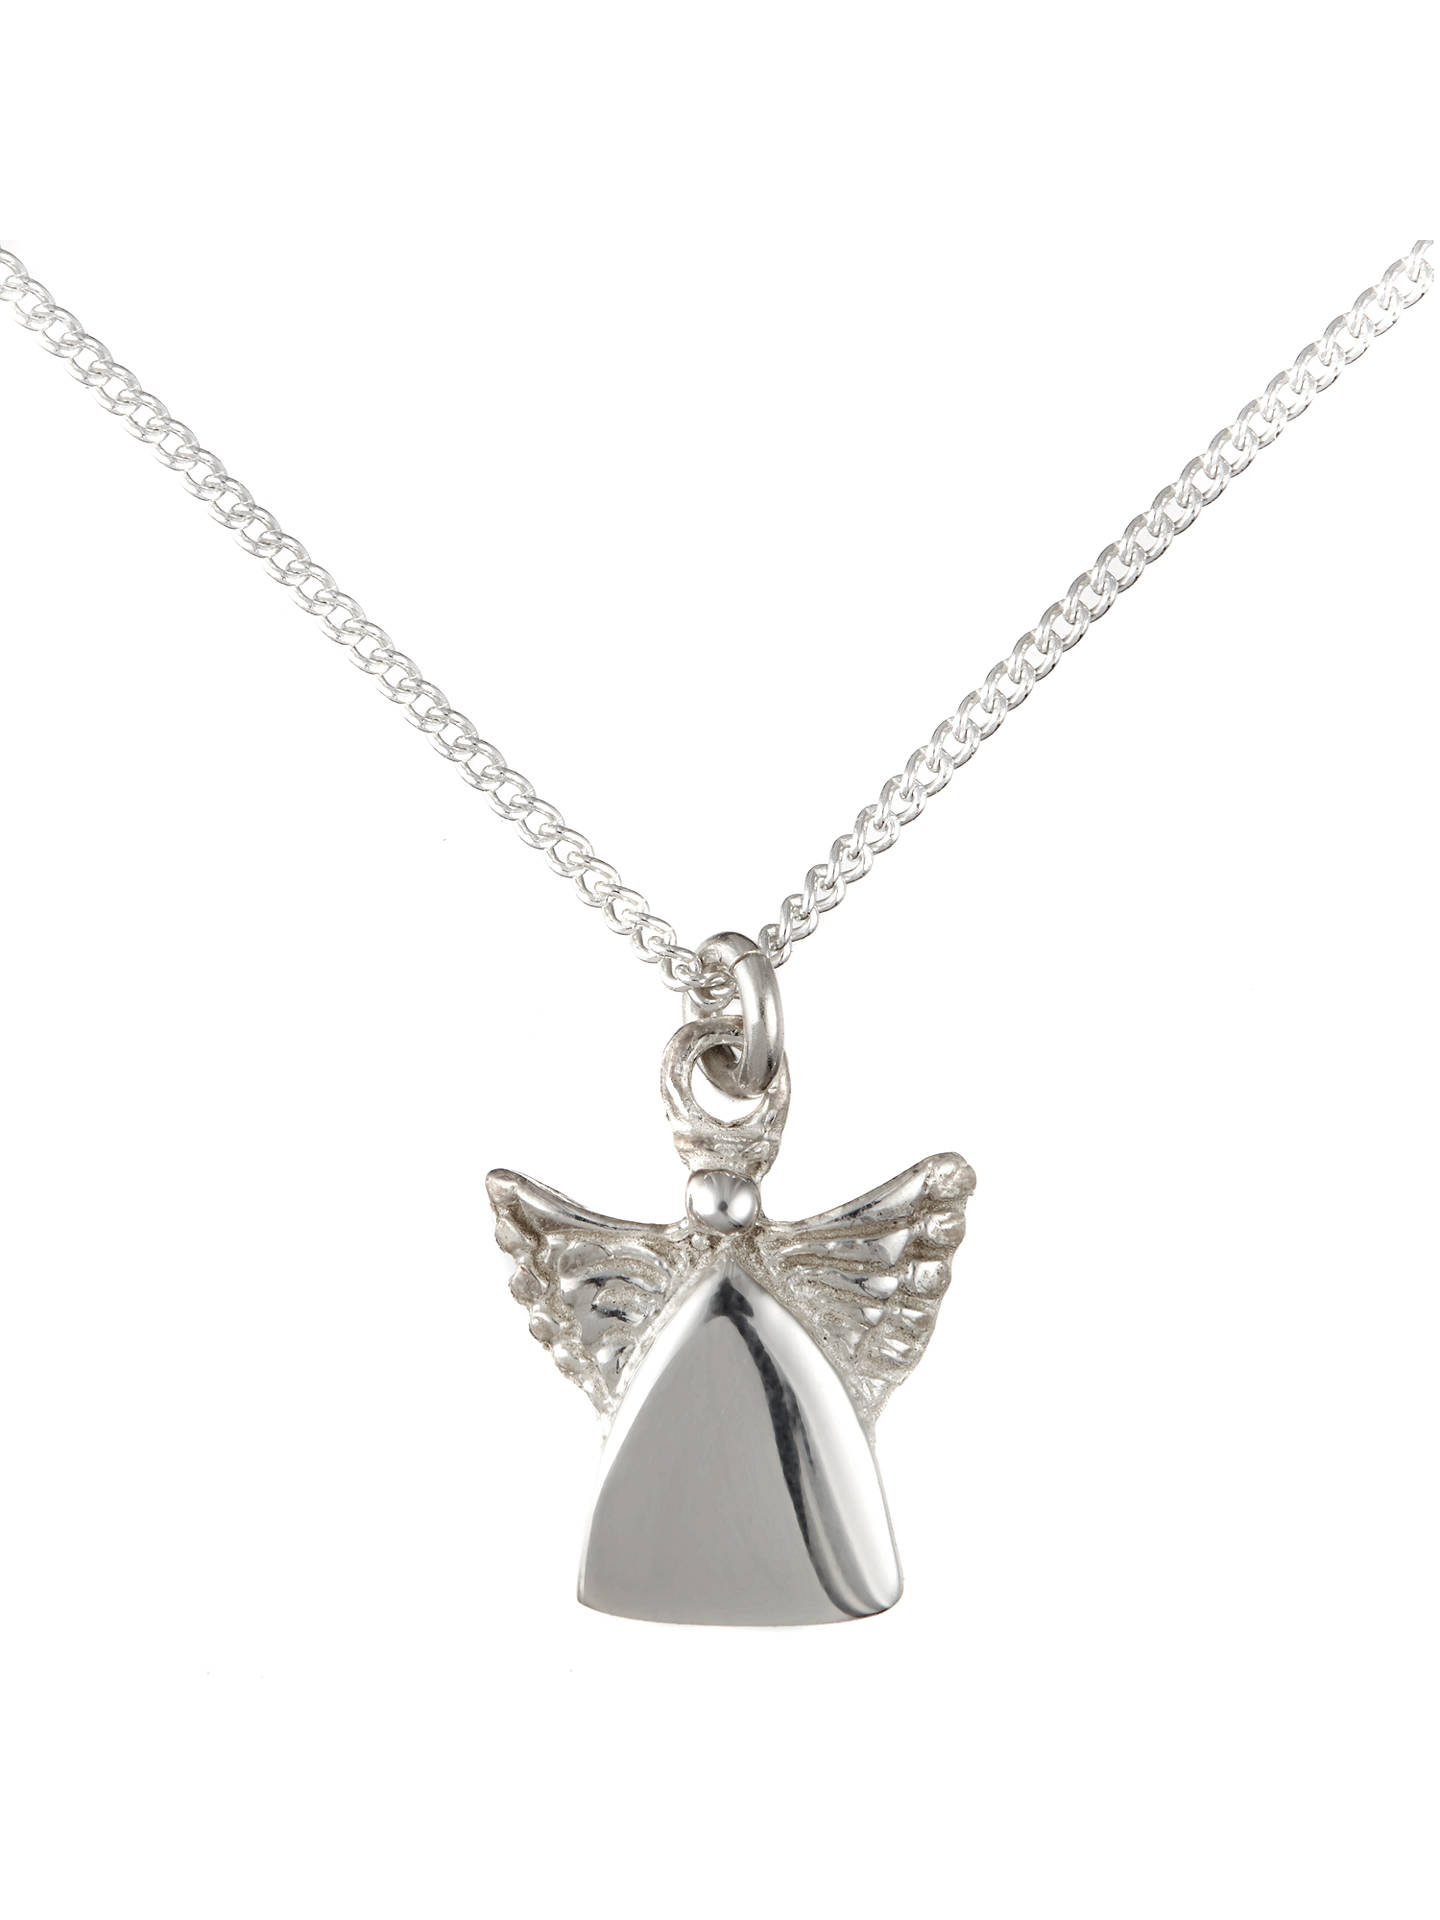 BuyJohn Lewis & Partners Children's Sterling Silver Guardian Angel Necklace Online at johnlewis.com